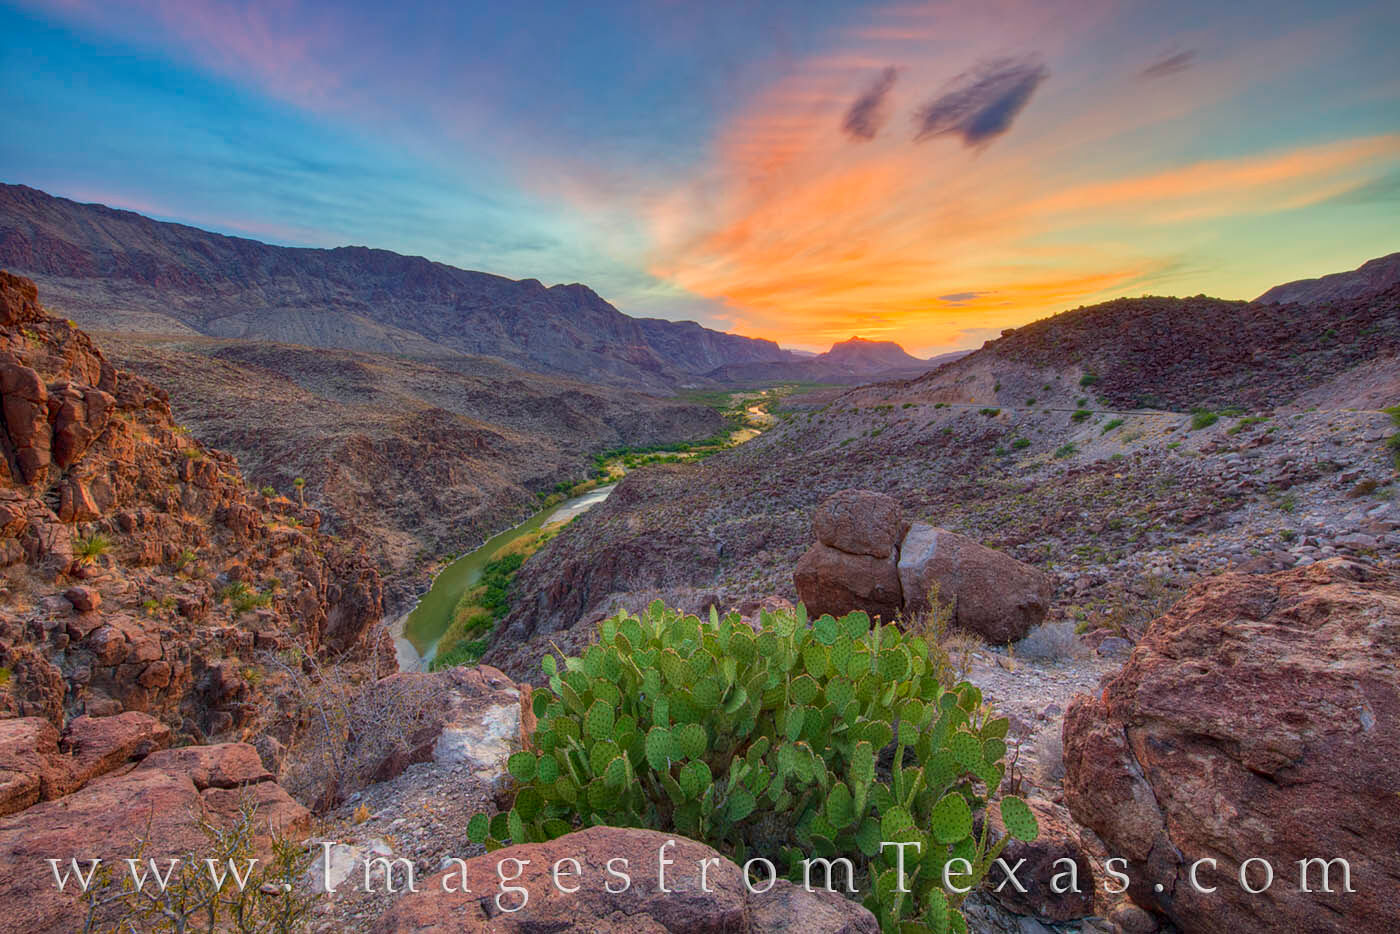 big bend ranch state park, rio grande, sunset, prickly pear, FM 170, big hill, texas landscapes, bbrsp, favorite, orange